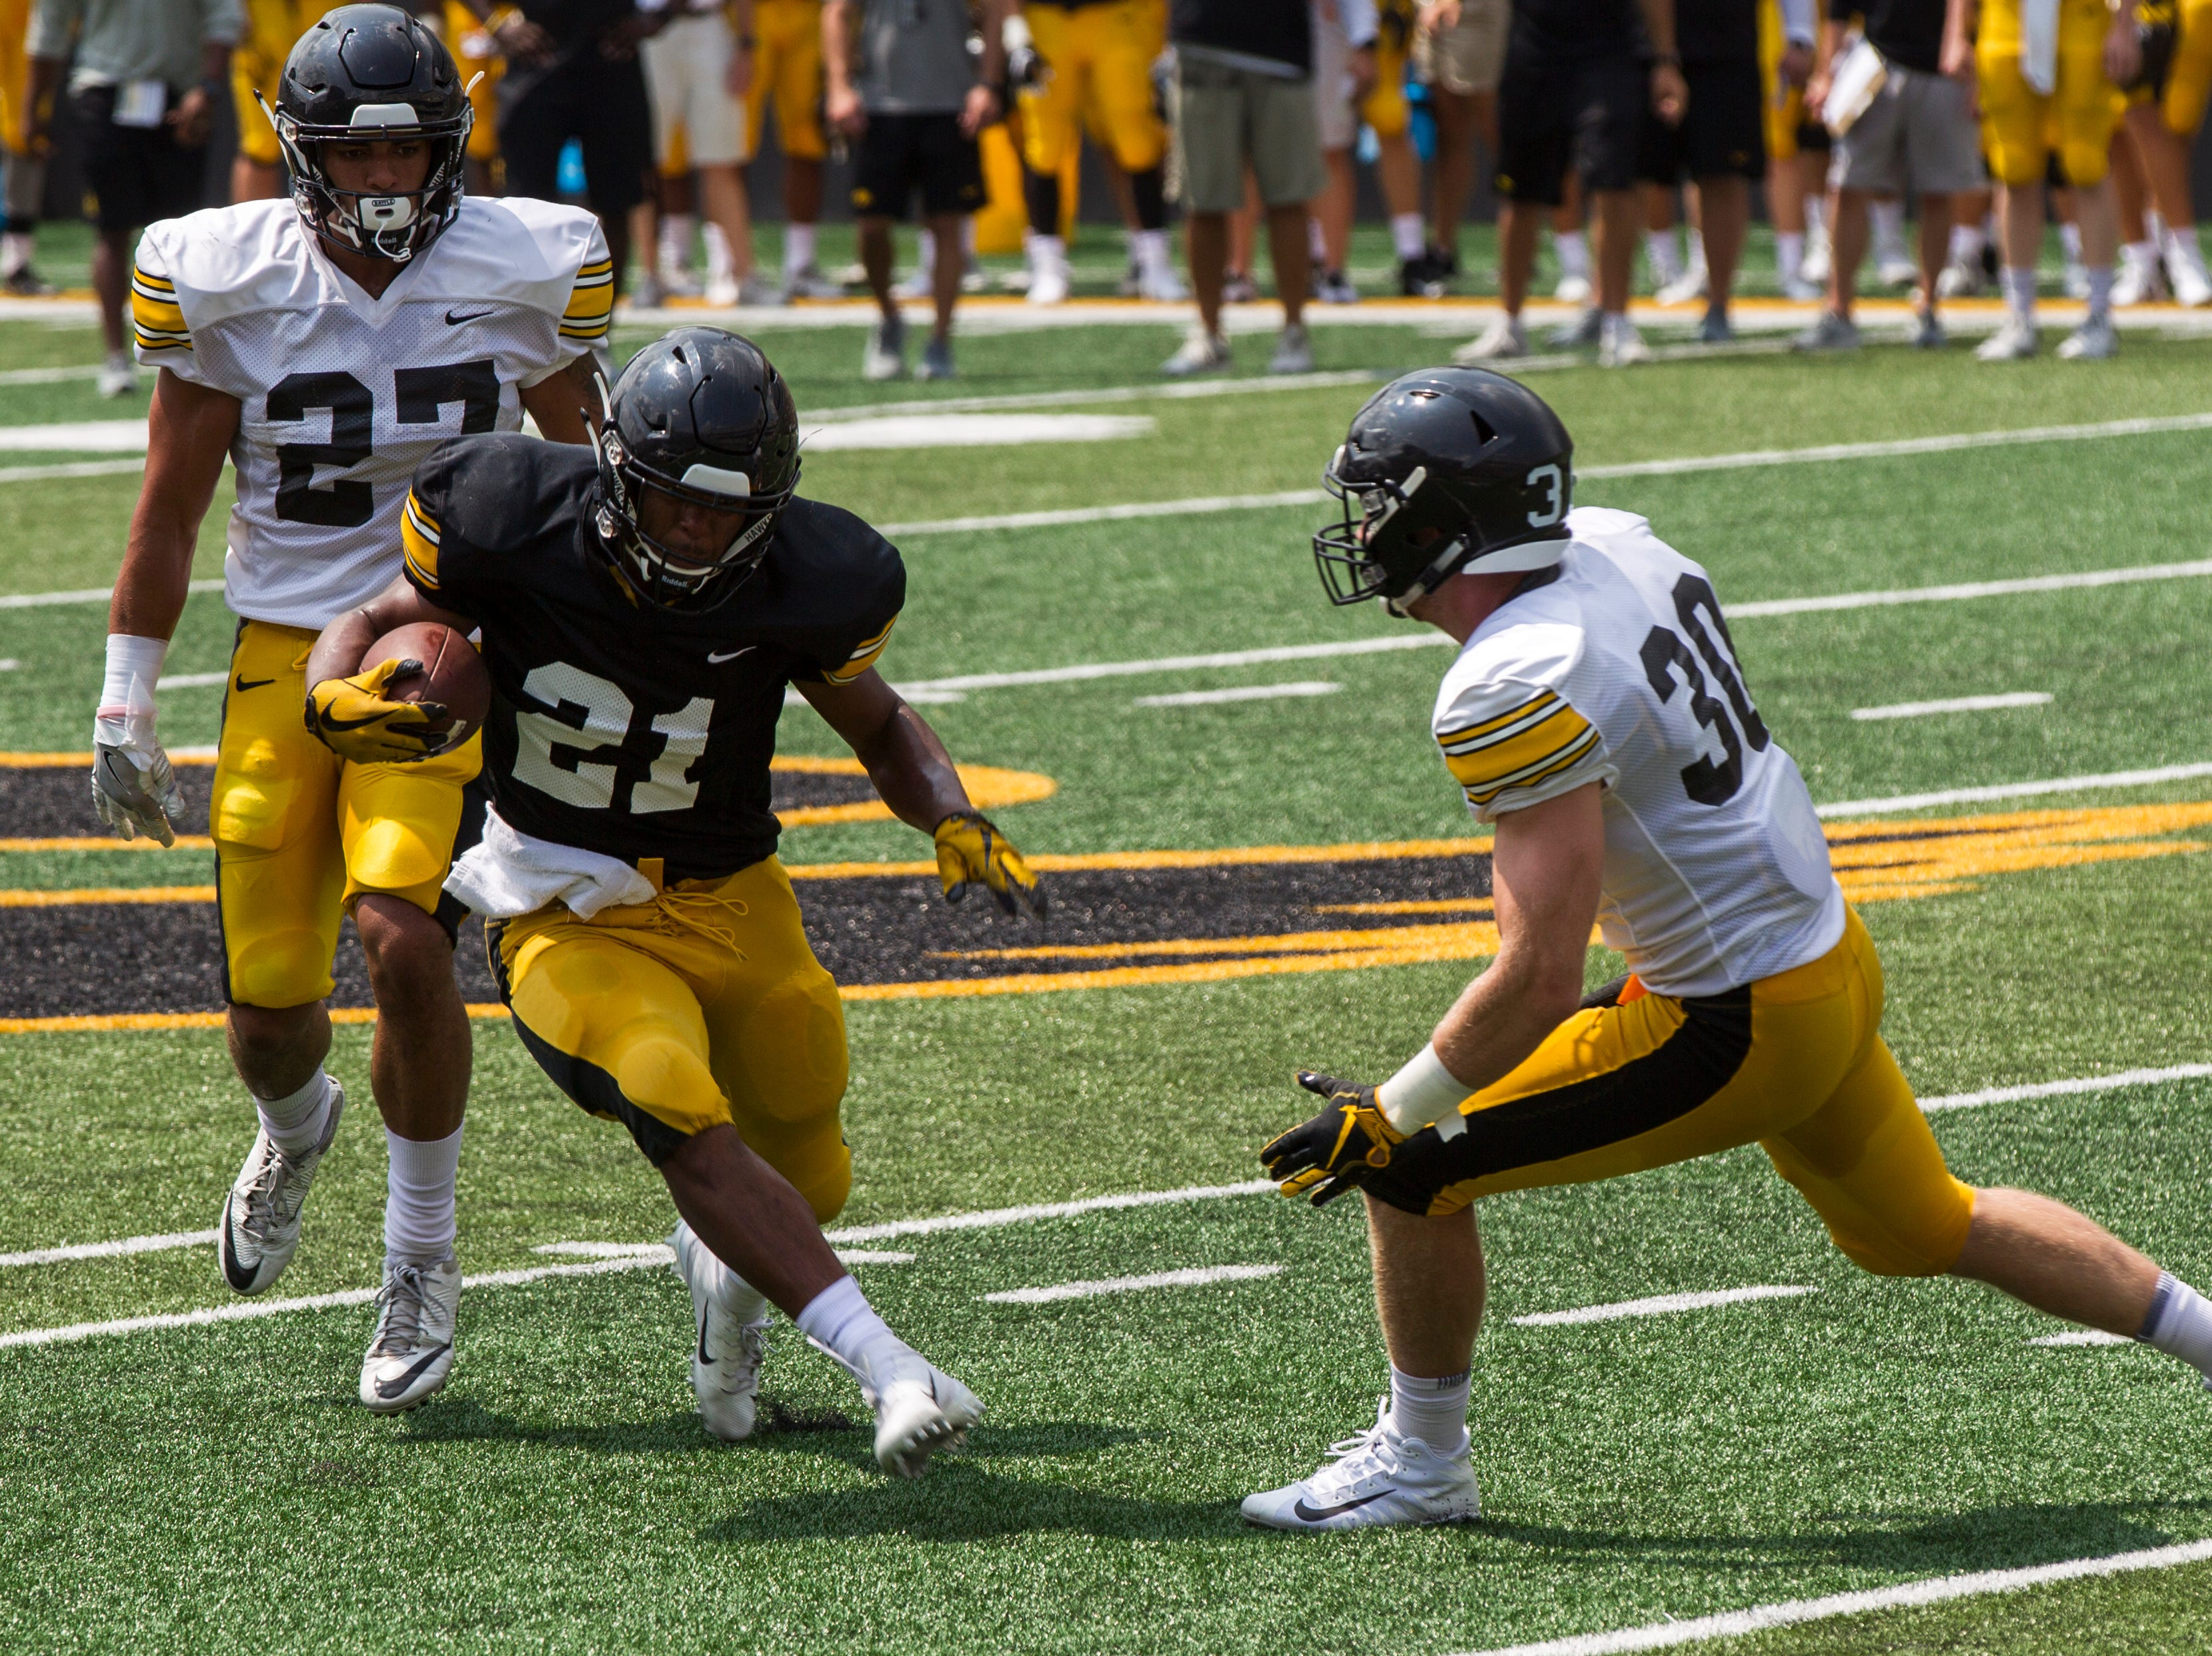 Iowa running back Ivory Kelly-Martin (21) rushes while getting covered by Amani Hooker (27) and Jake Gervase (30) during a Kids Day practice on Saturday, Aug. 11, 2018, at Kinnick Stadium in Iowa City.